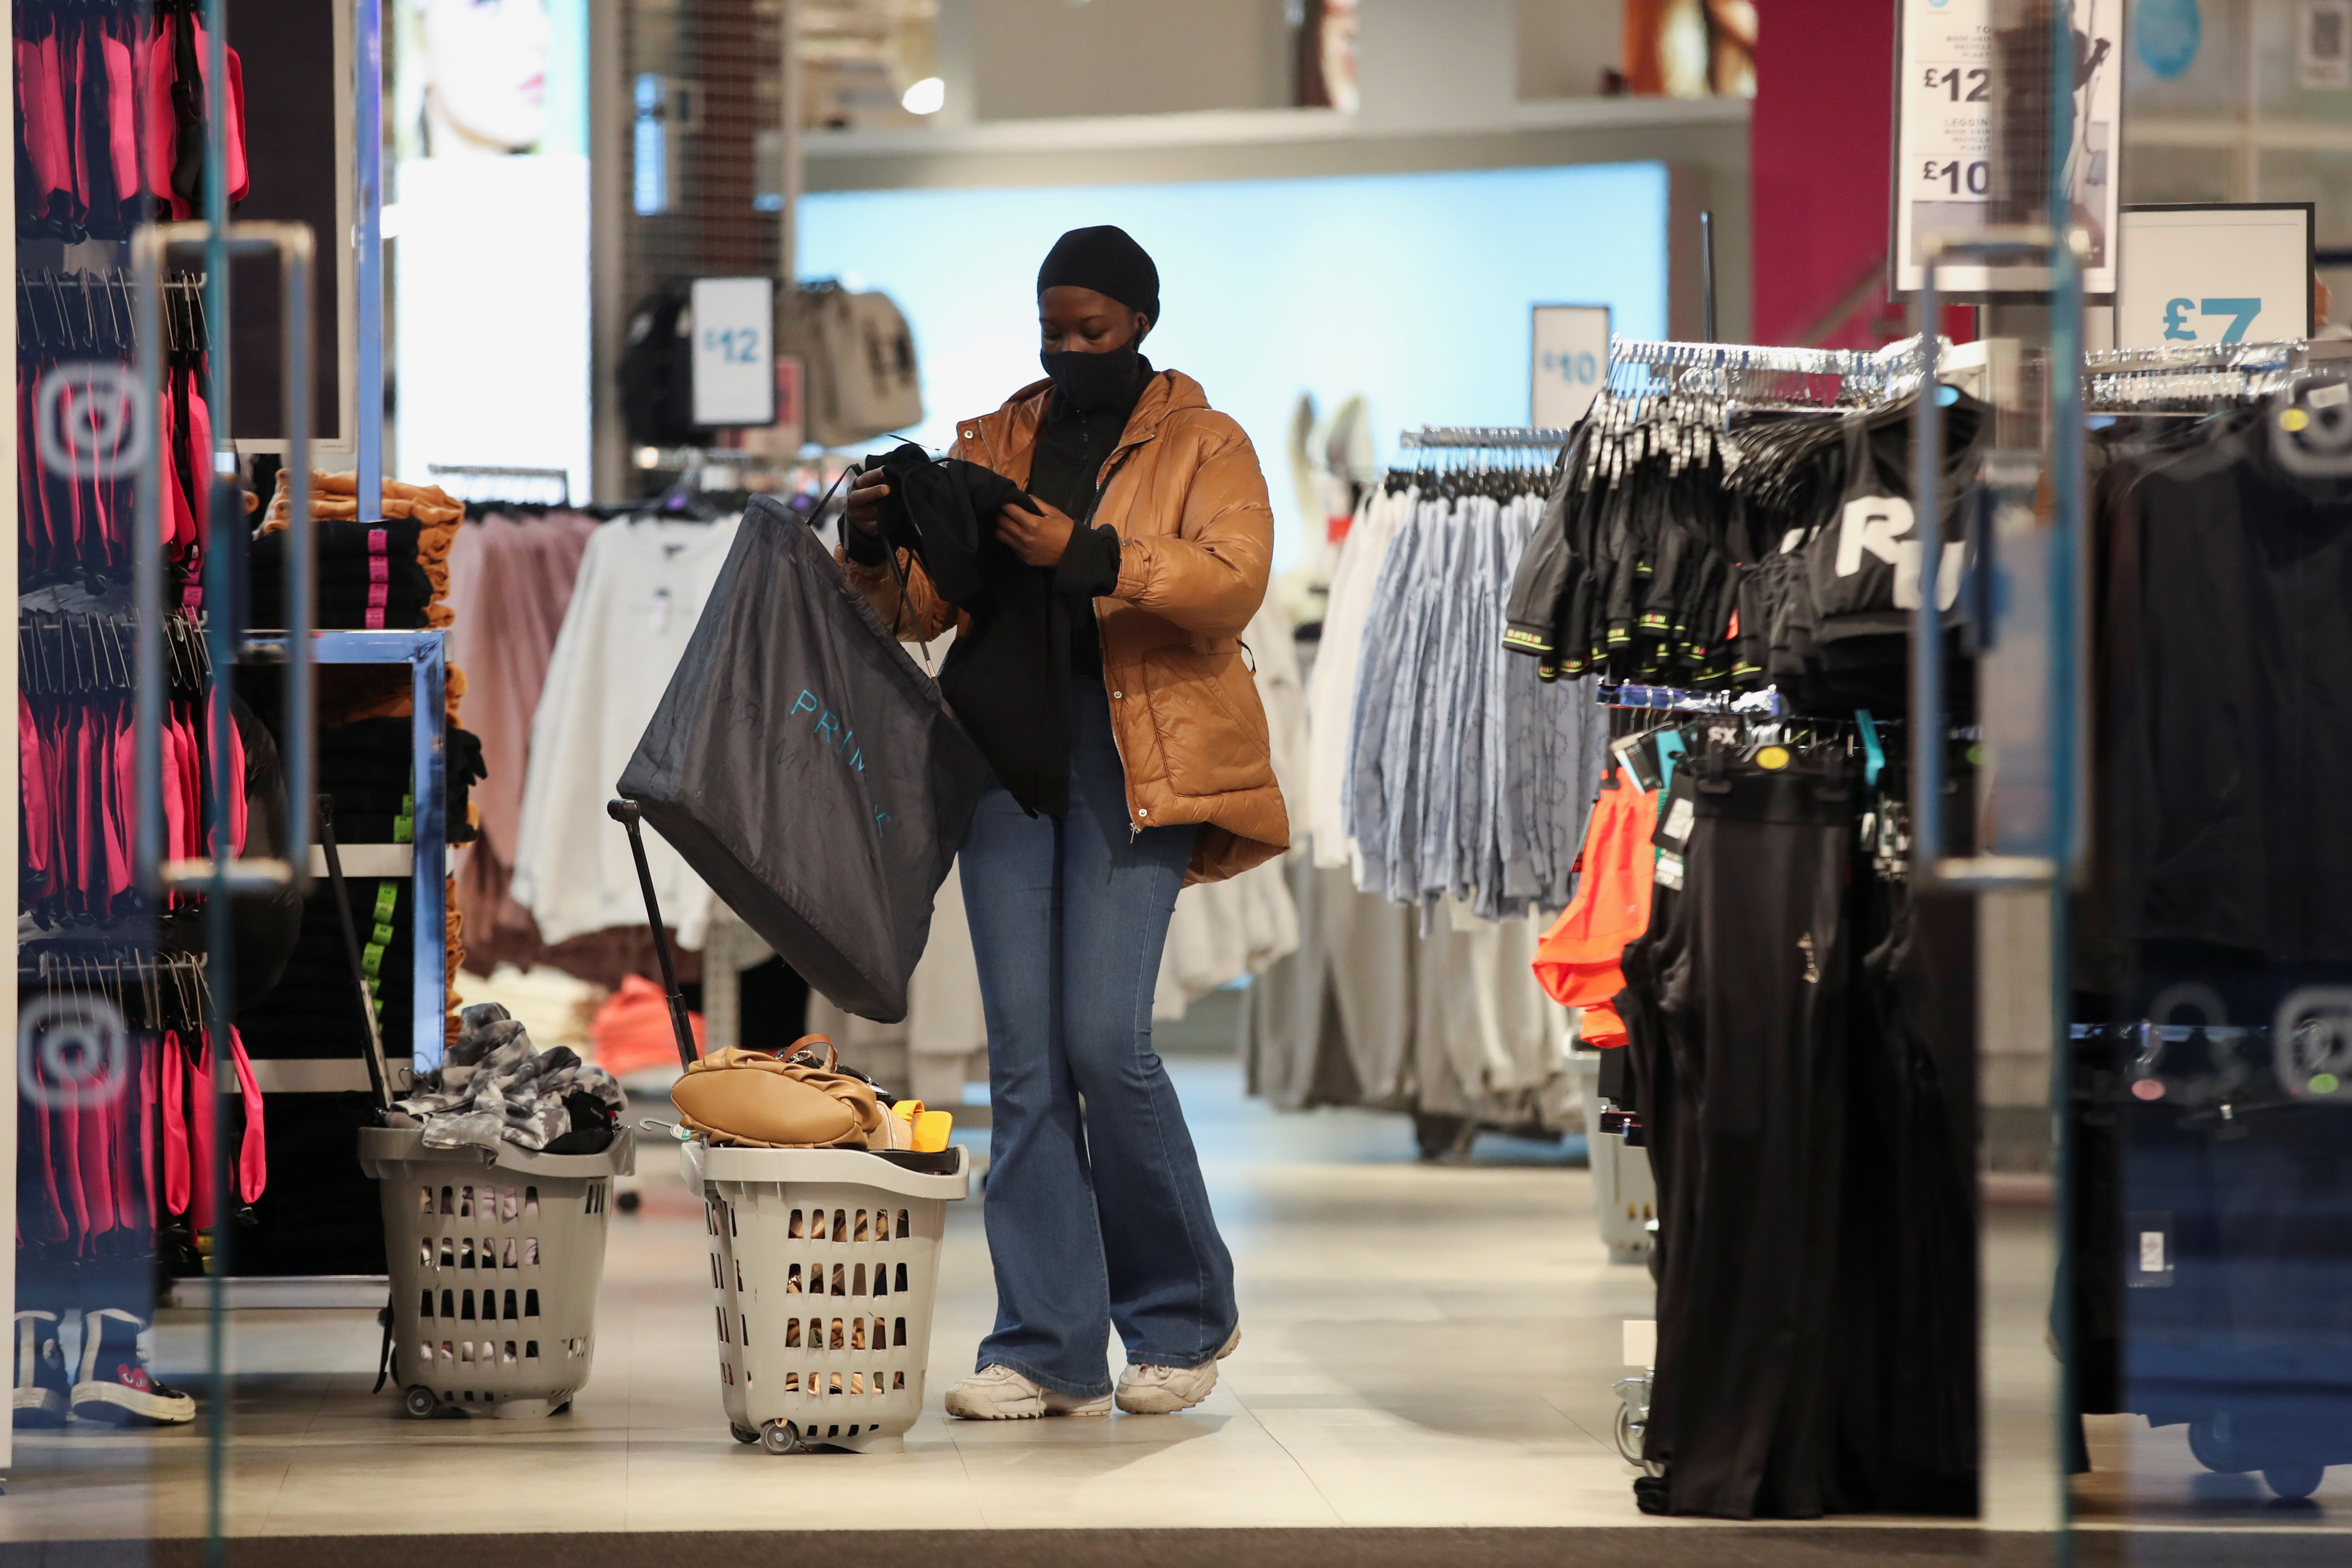 A customer shops inside, as retail store Primark in Birmingham, Britain reopens its doors after a third lockdown imposed in early January due to the ongoing coronavirus disease (COVID-19) pandemic, April 12, 2021. REUTERS/Carl Recine